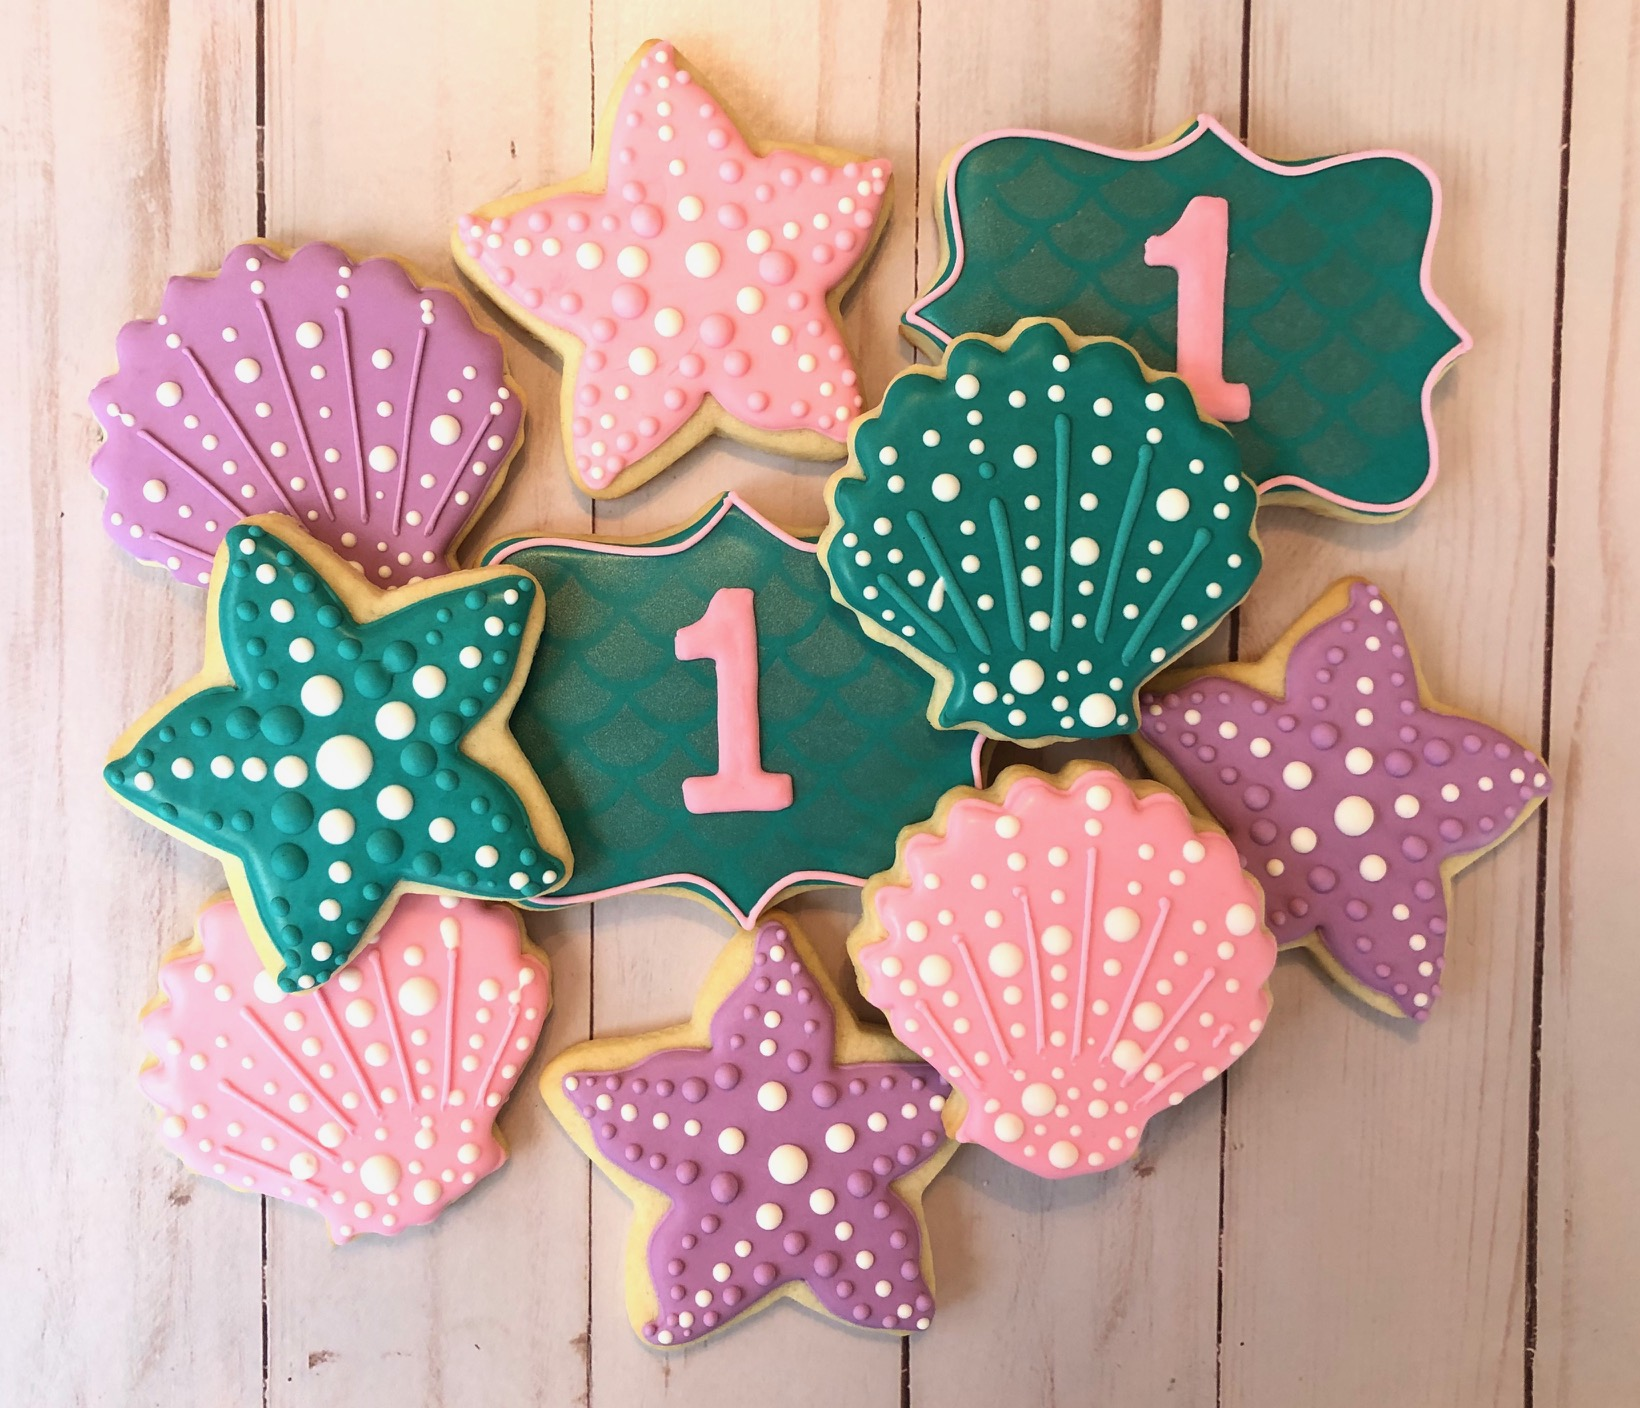 Seashell & Starfish Cookies